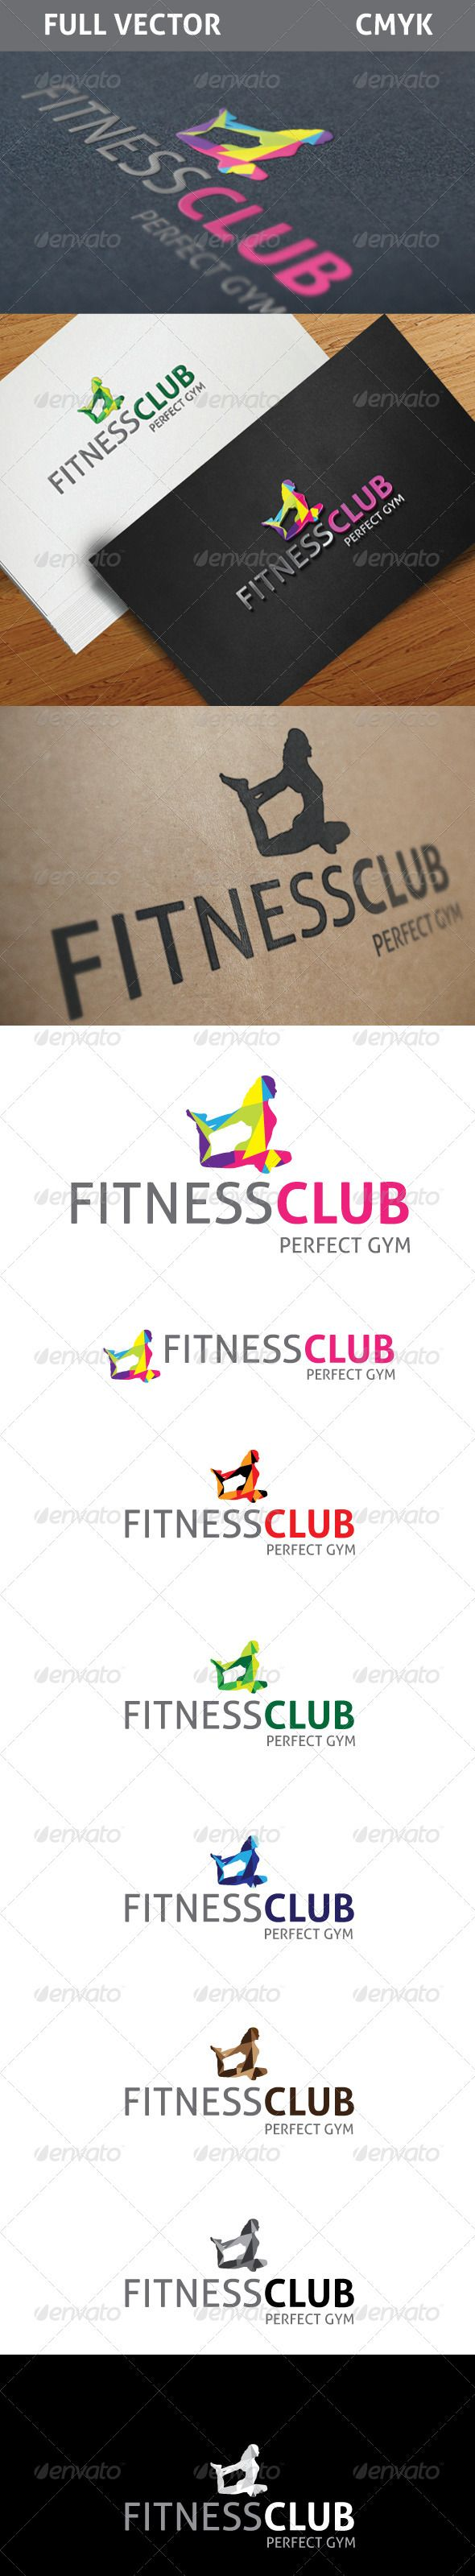 Fitness Club Logo  #GraphicRiver        Can be Used with Gym, health and Fitness Club business, blog, websites, centres etc Free Font Used  .fontsquirrel /fonts/Aller     Created: 22June12 GraphicsFilesIncluded: VectorEPS #AIIllustrator Layered: No MinimumAdobeCSVersion: CS3 Resolution: Resizable Tags: aerobics #body #bodybuilding #business #calories #center #club #corporate #design #energy #exercises #fat #fitness #gym #health #instructor #logo #medical #modern #nutrition #perfect #power…